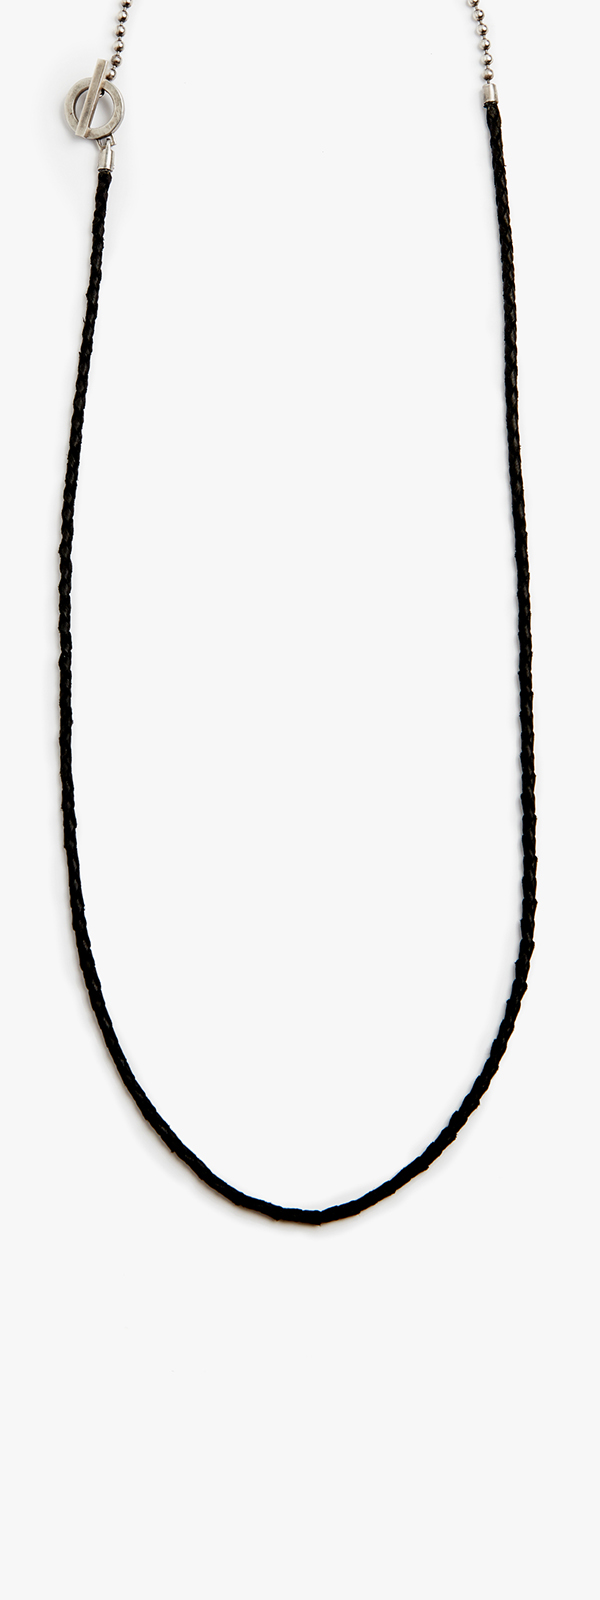 Image of Leather Necklace 066